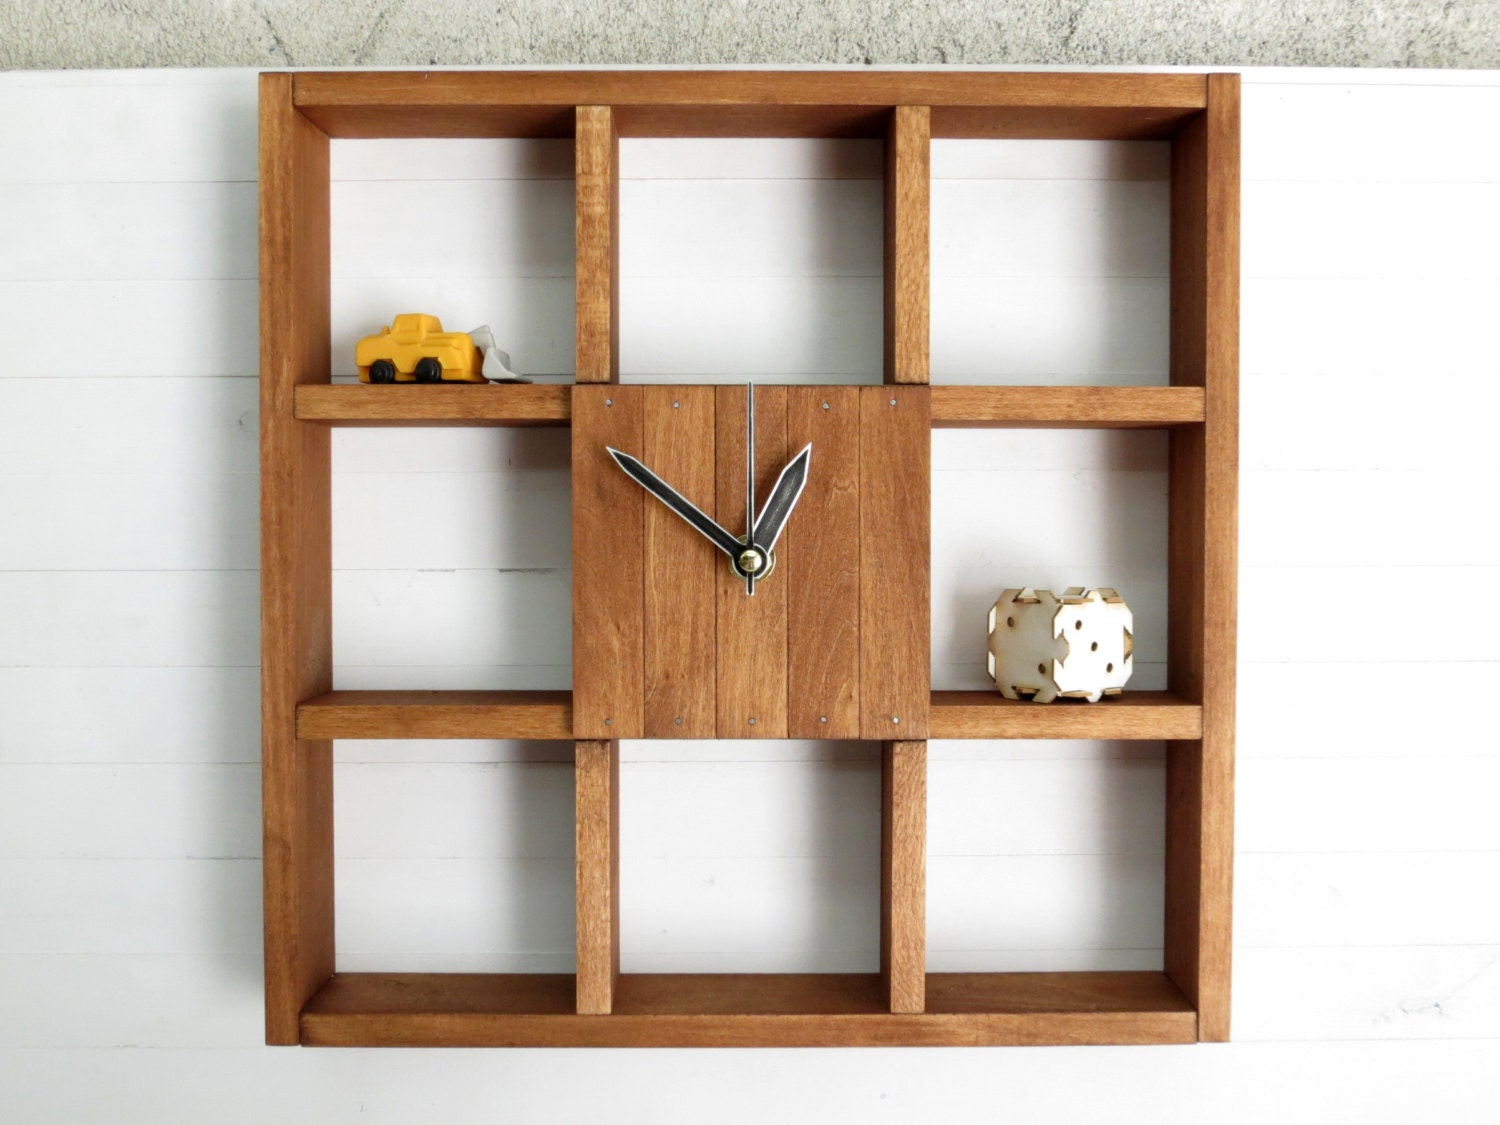 Design Wall Cabinets Wooden : Large wall clock shadow box shelf rustic centerpiece